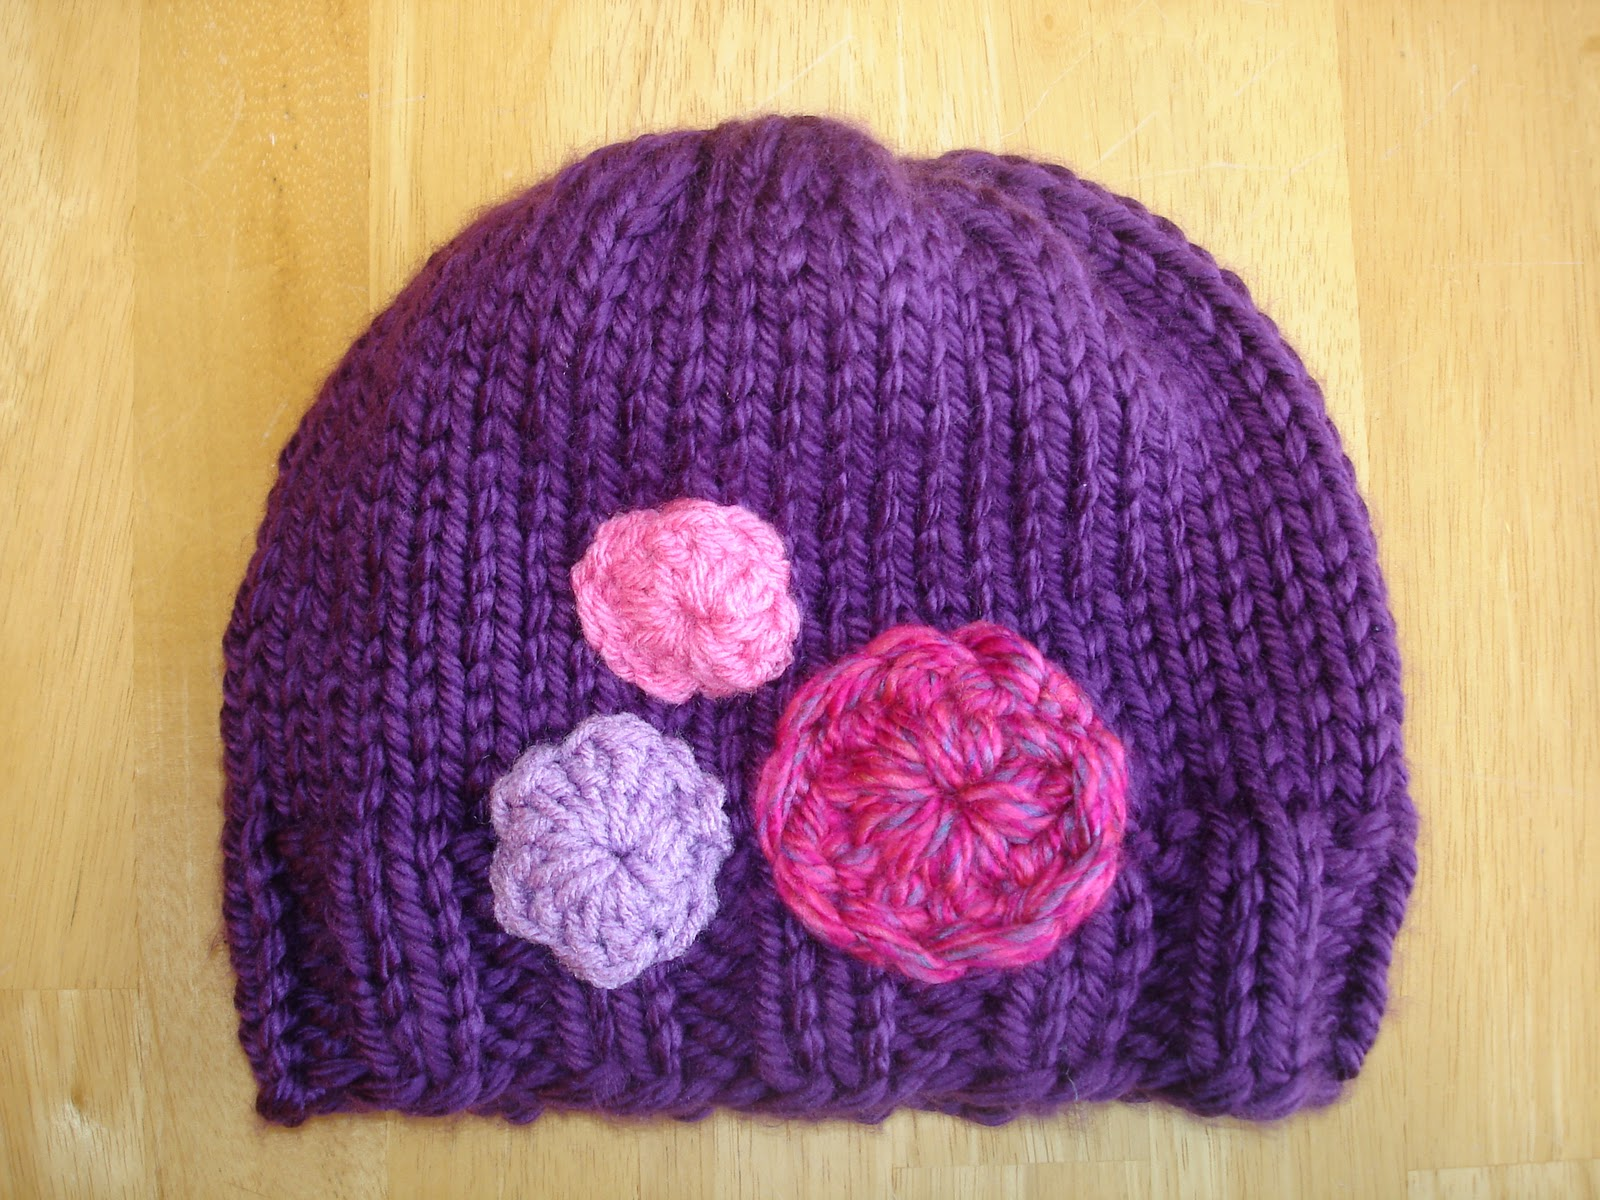 Free Knitting Patterns For Hats In The Round : Fiber Flux: Free Knitting Pattern! Her Royal Highness Hat...